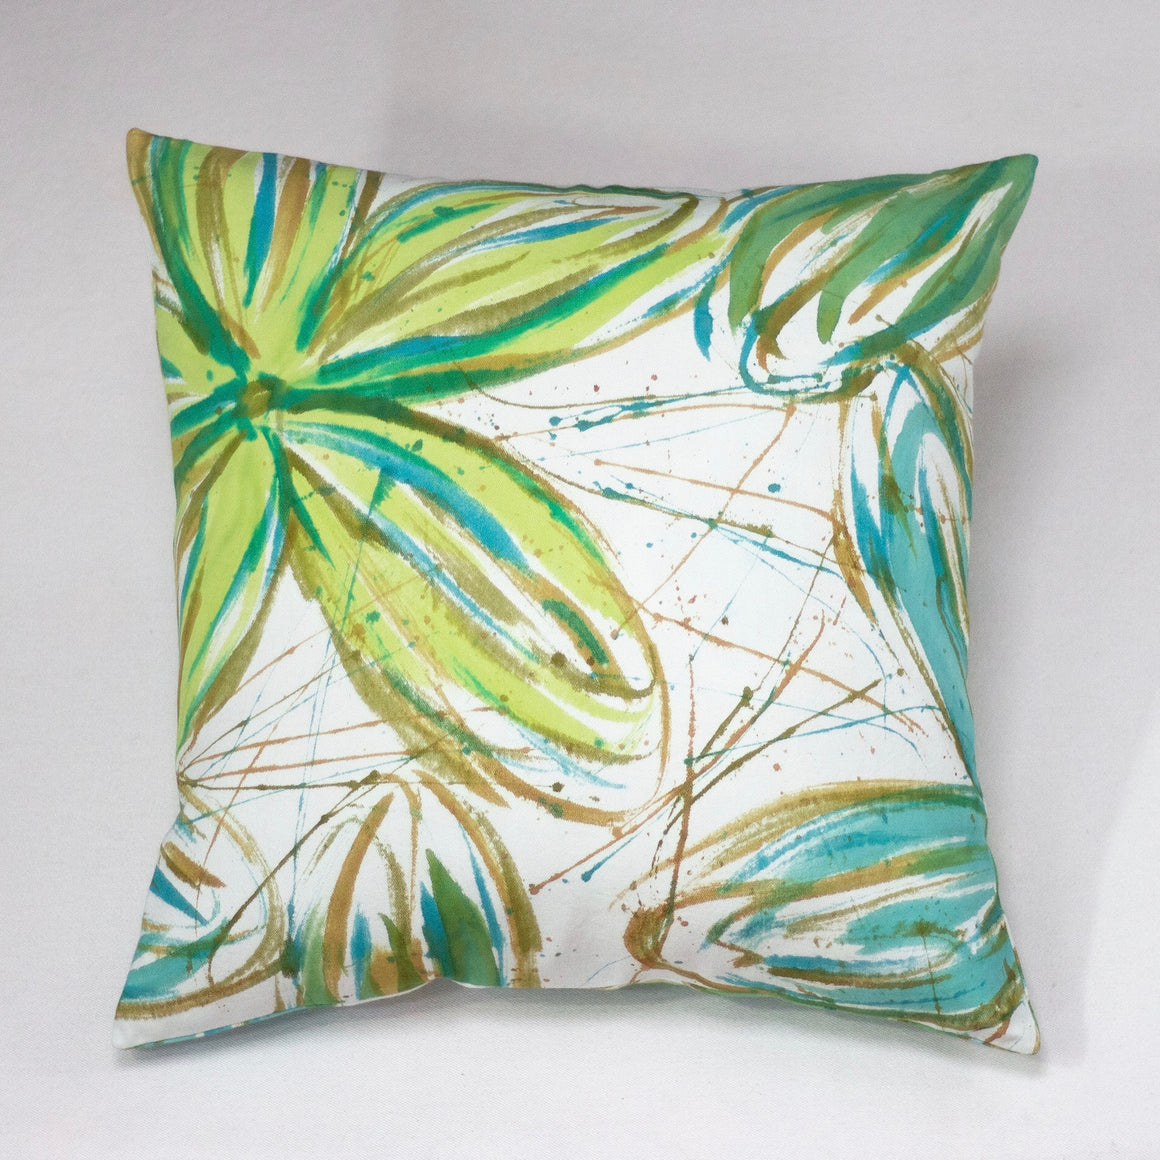 Accent Pillows - Hand Painted - FlowerPower